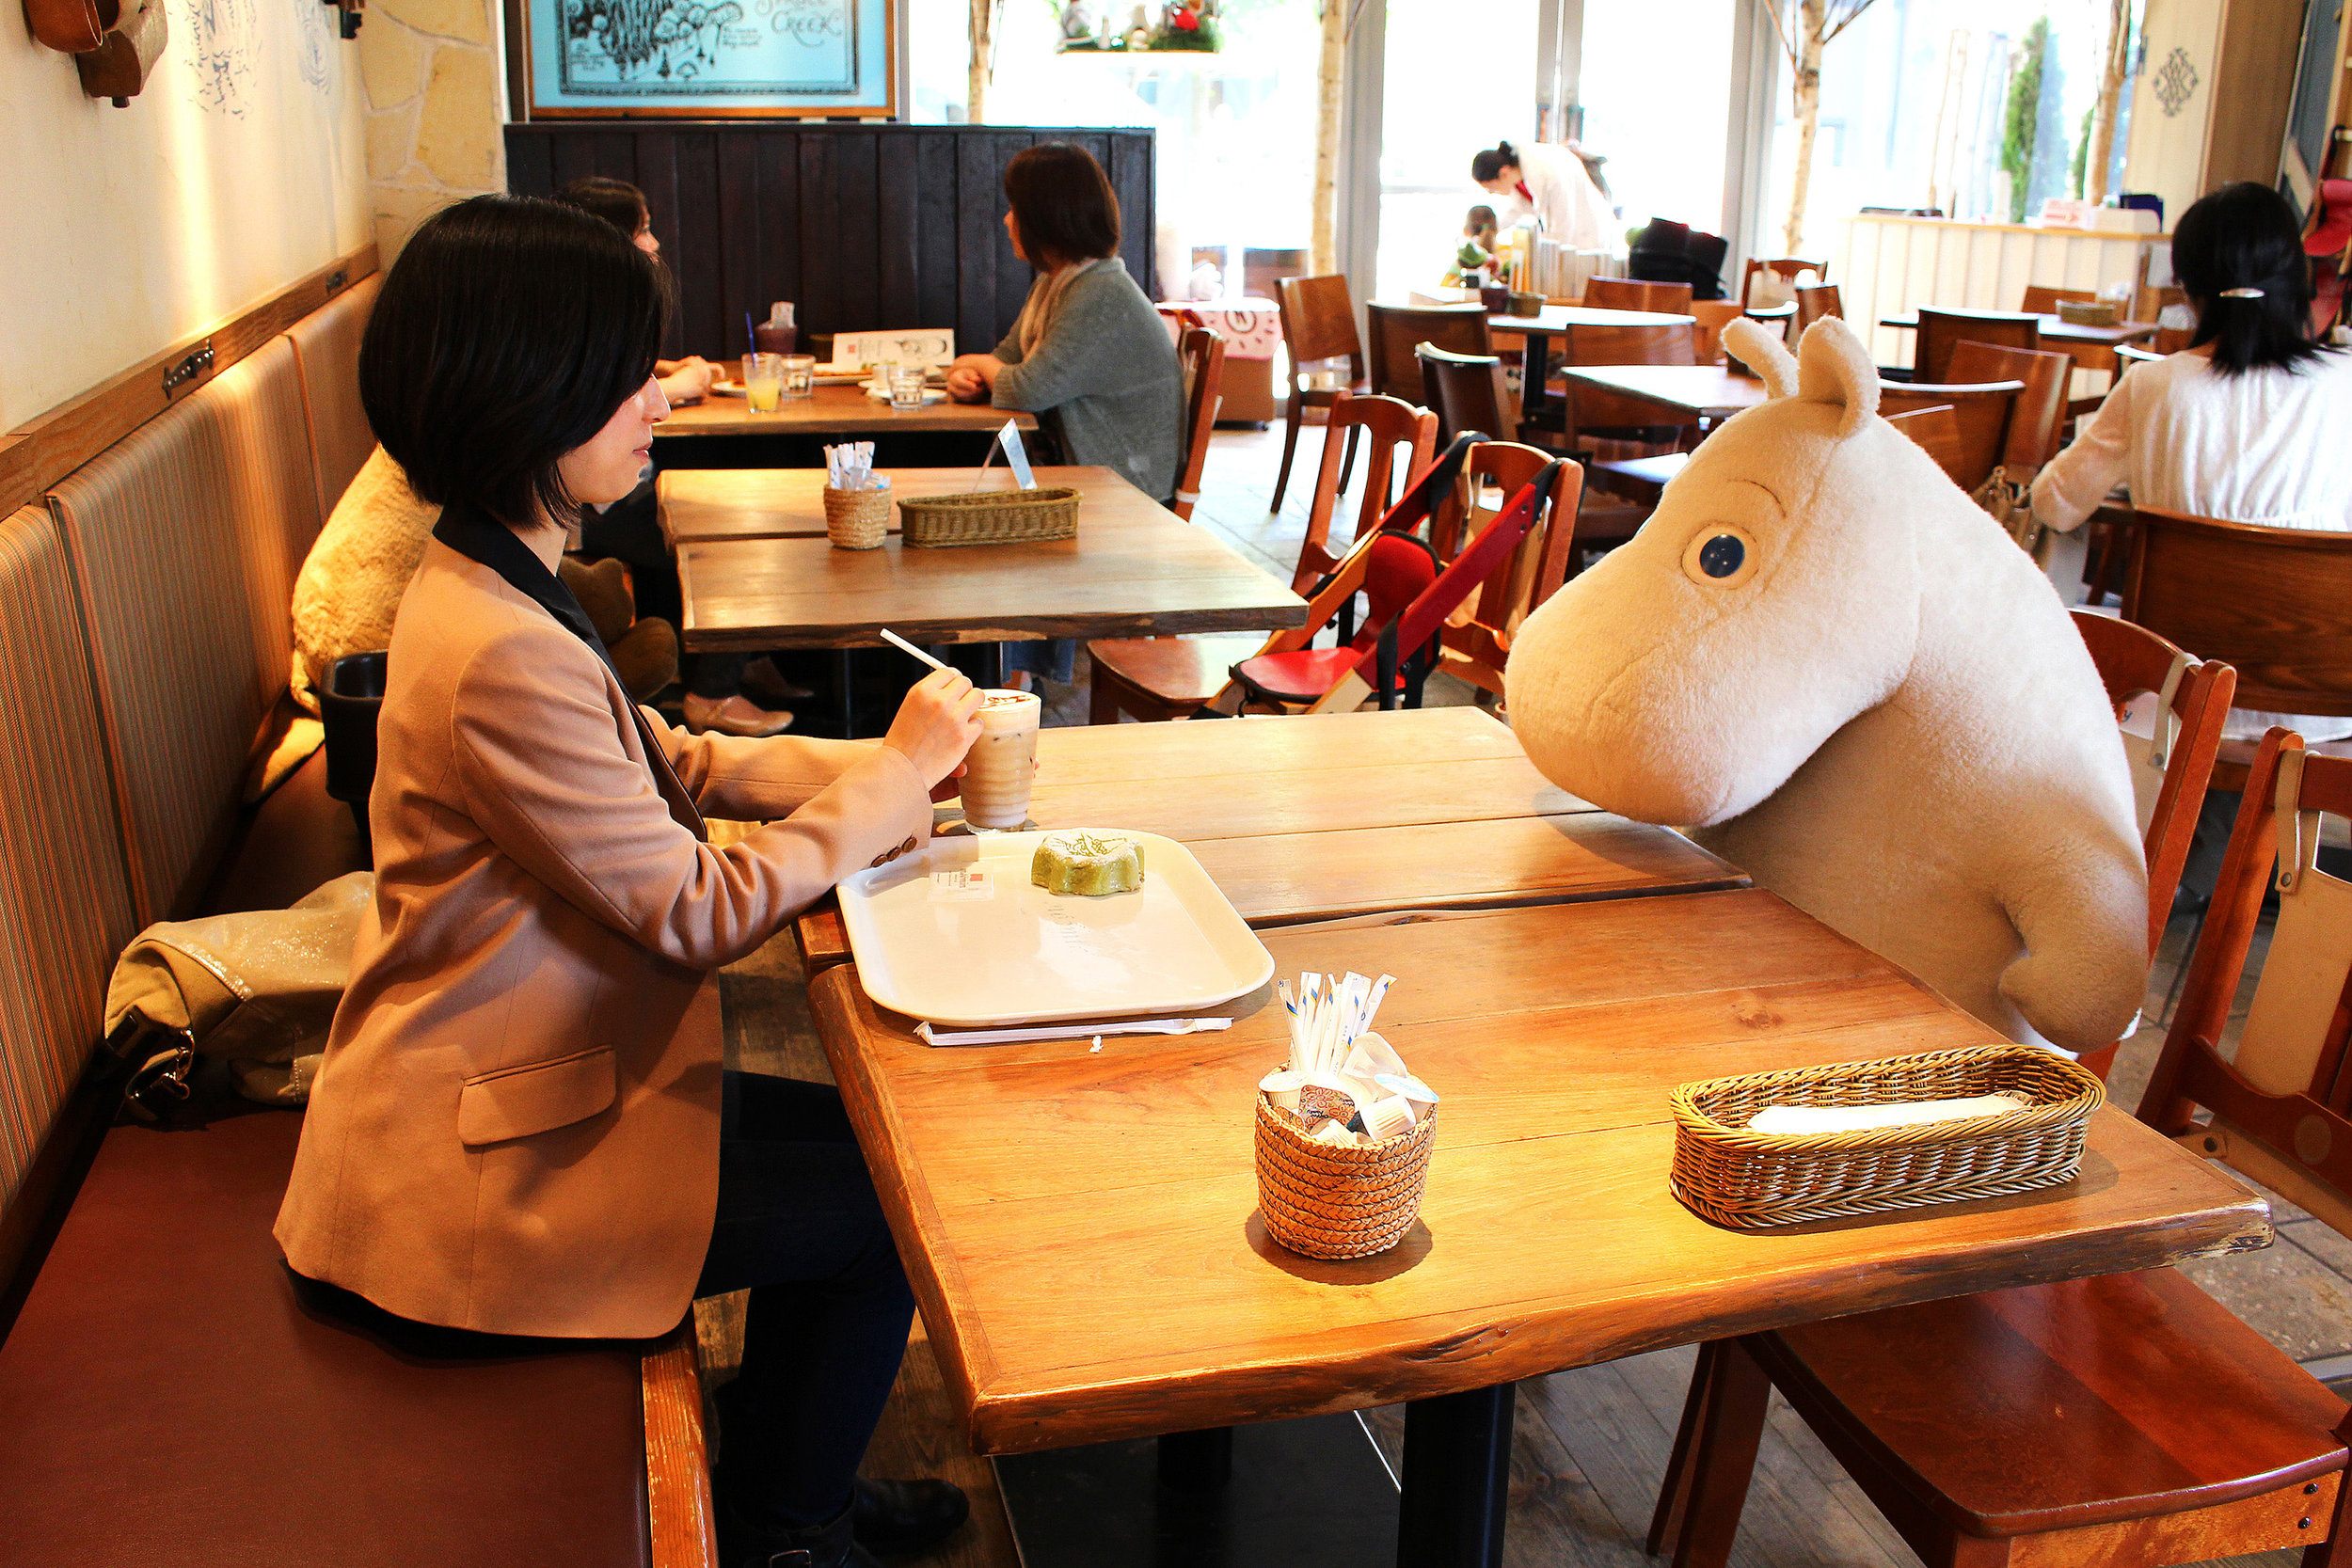 Anti-lonliness cafe in Japan | Yuki Arakawa/CNN